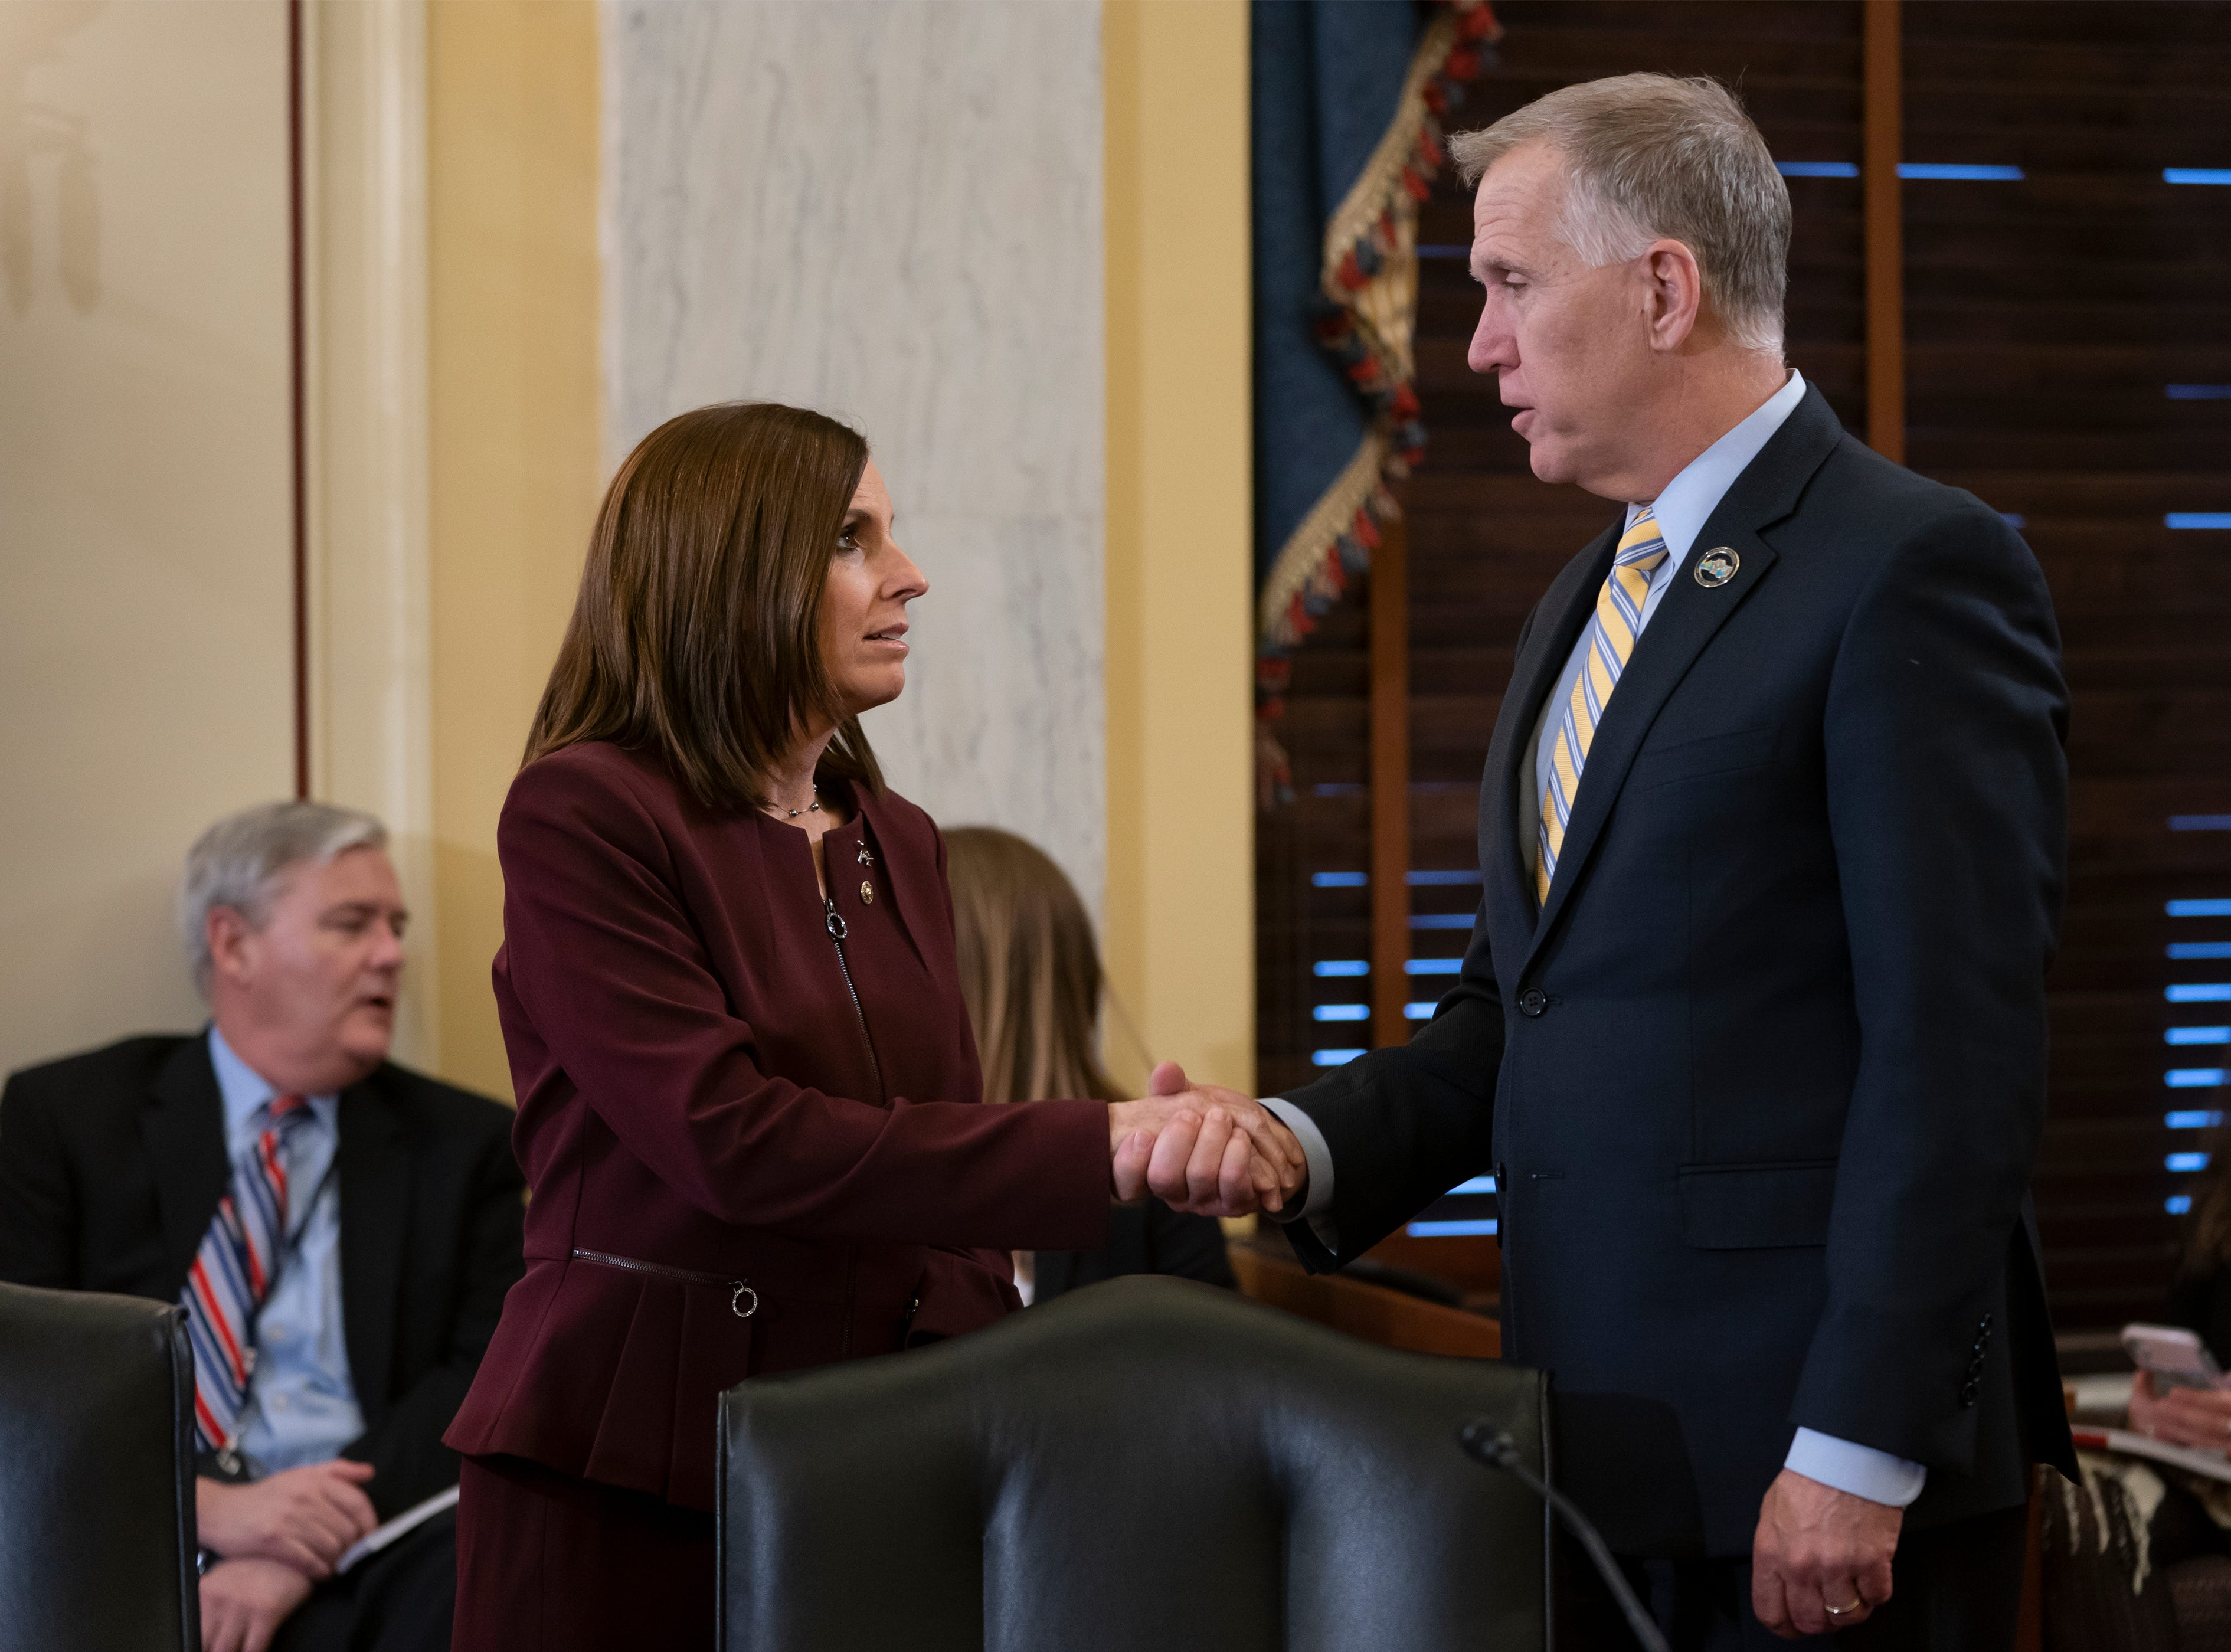 Sen. Martha McSally, R-Ariz., left, is greeted by Sen. Thom Tillis, R-N.C., chairman of the Senate Armed Services Subcommittee on Personnel, as she prepares to testify about her experience with sexual assault while serving as a colonel in the Air Force, on Capitol Hill in Washington, Wednesday, March 6, 2019. McSally, the first female fighter pilot to fly in combat, says she was raped in the Air Force by superior officer. (AP Photo/J. Scott Applewhite)